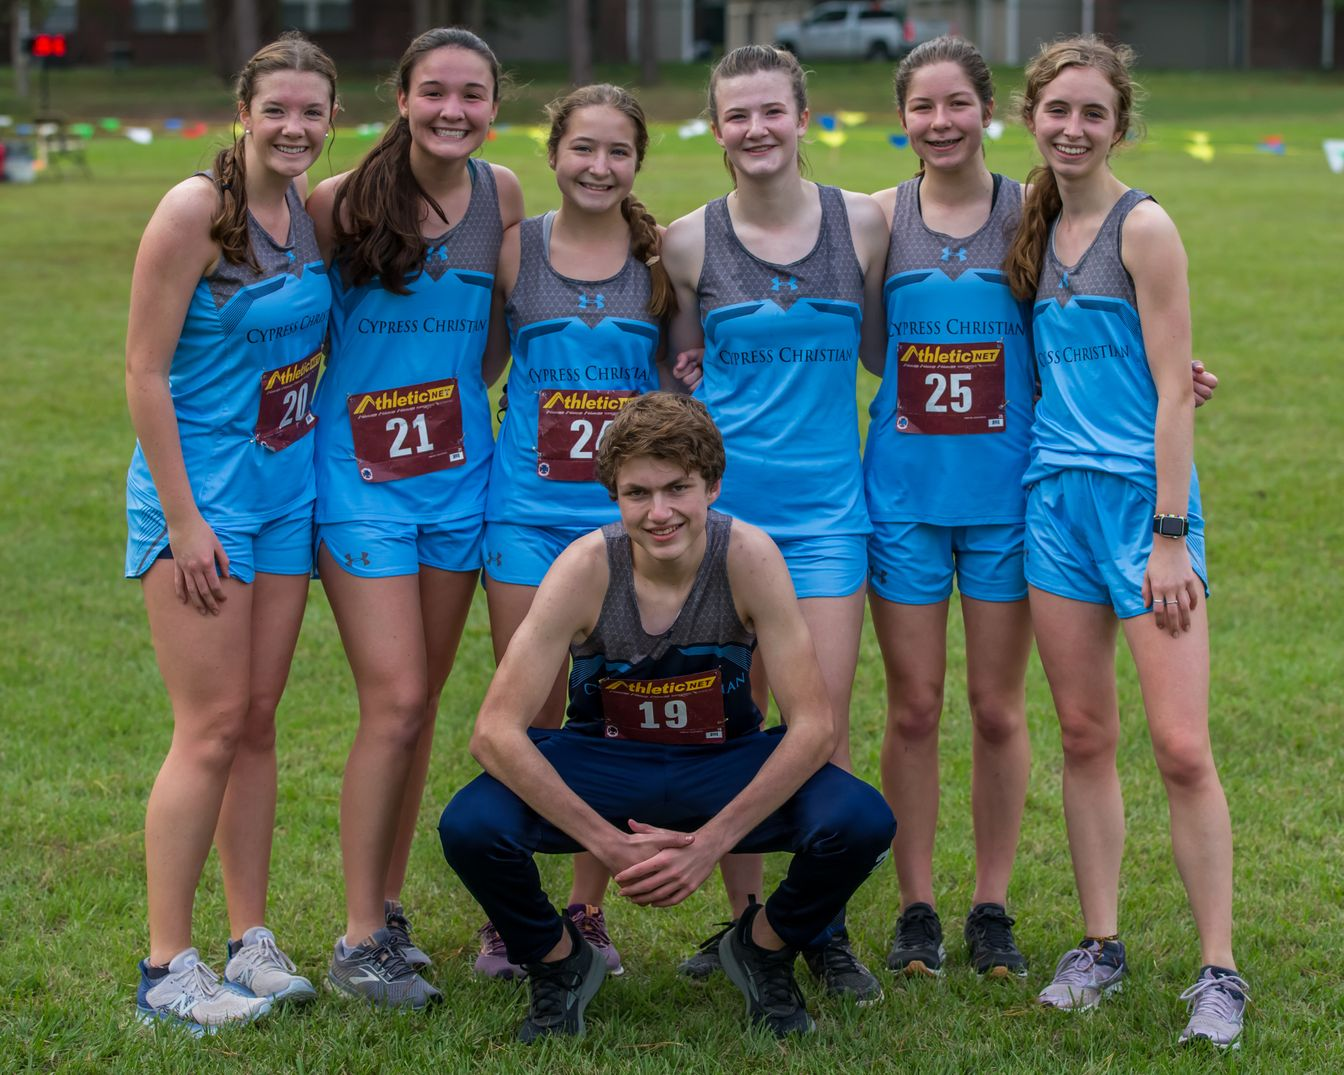 Cross Country Teams Will Compete in State Meet